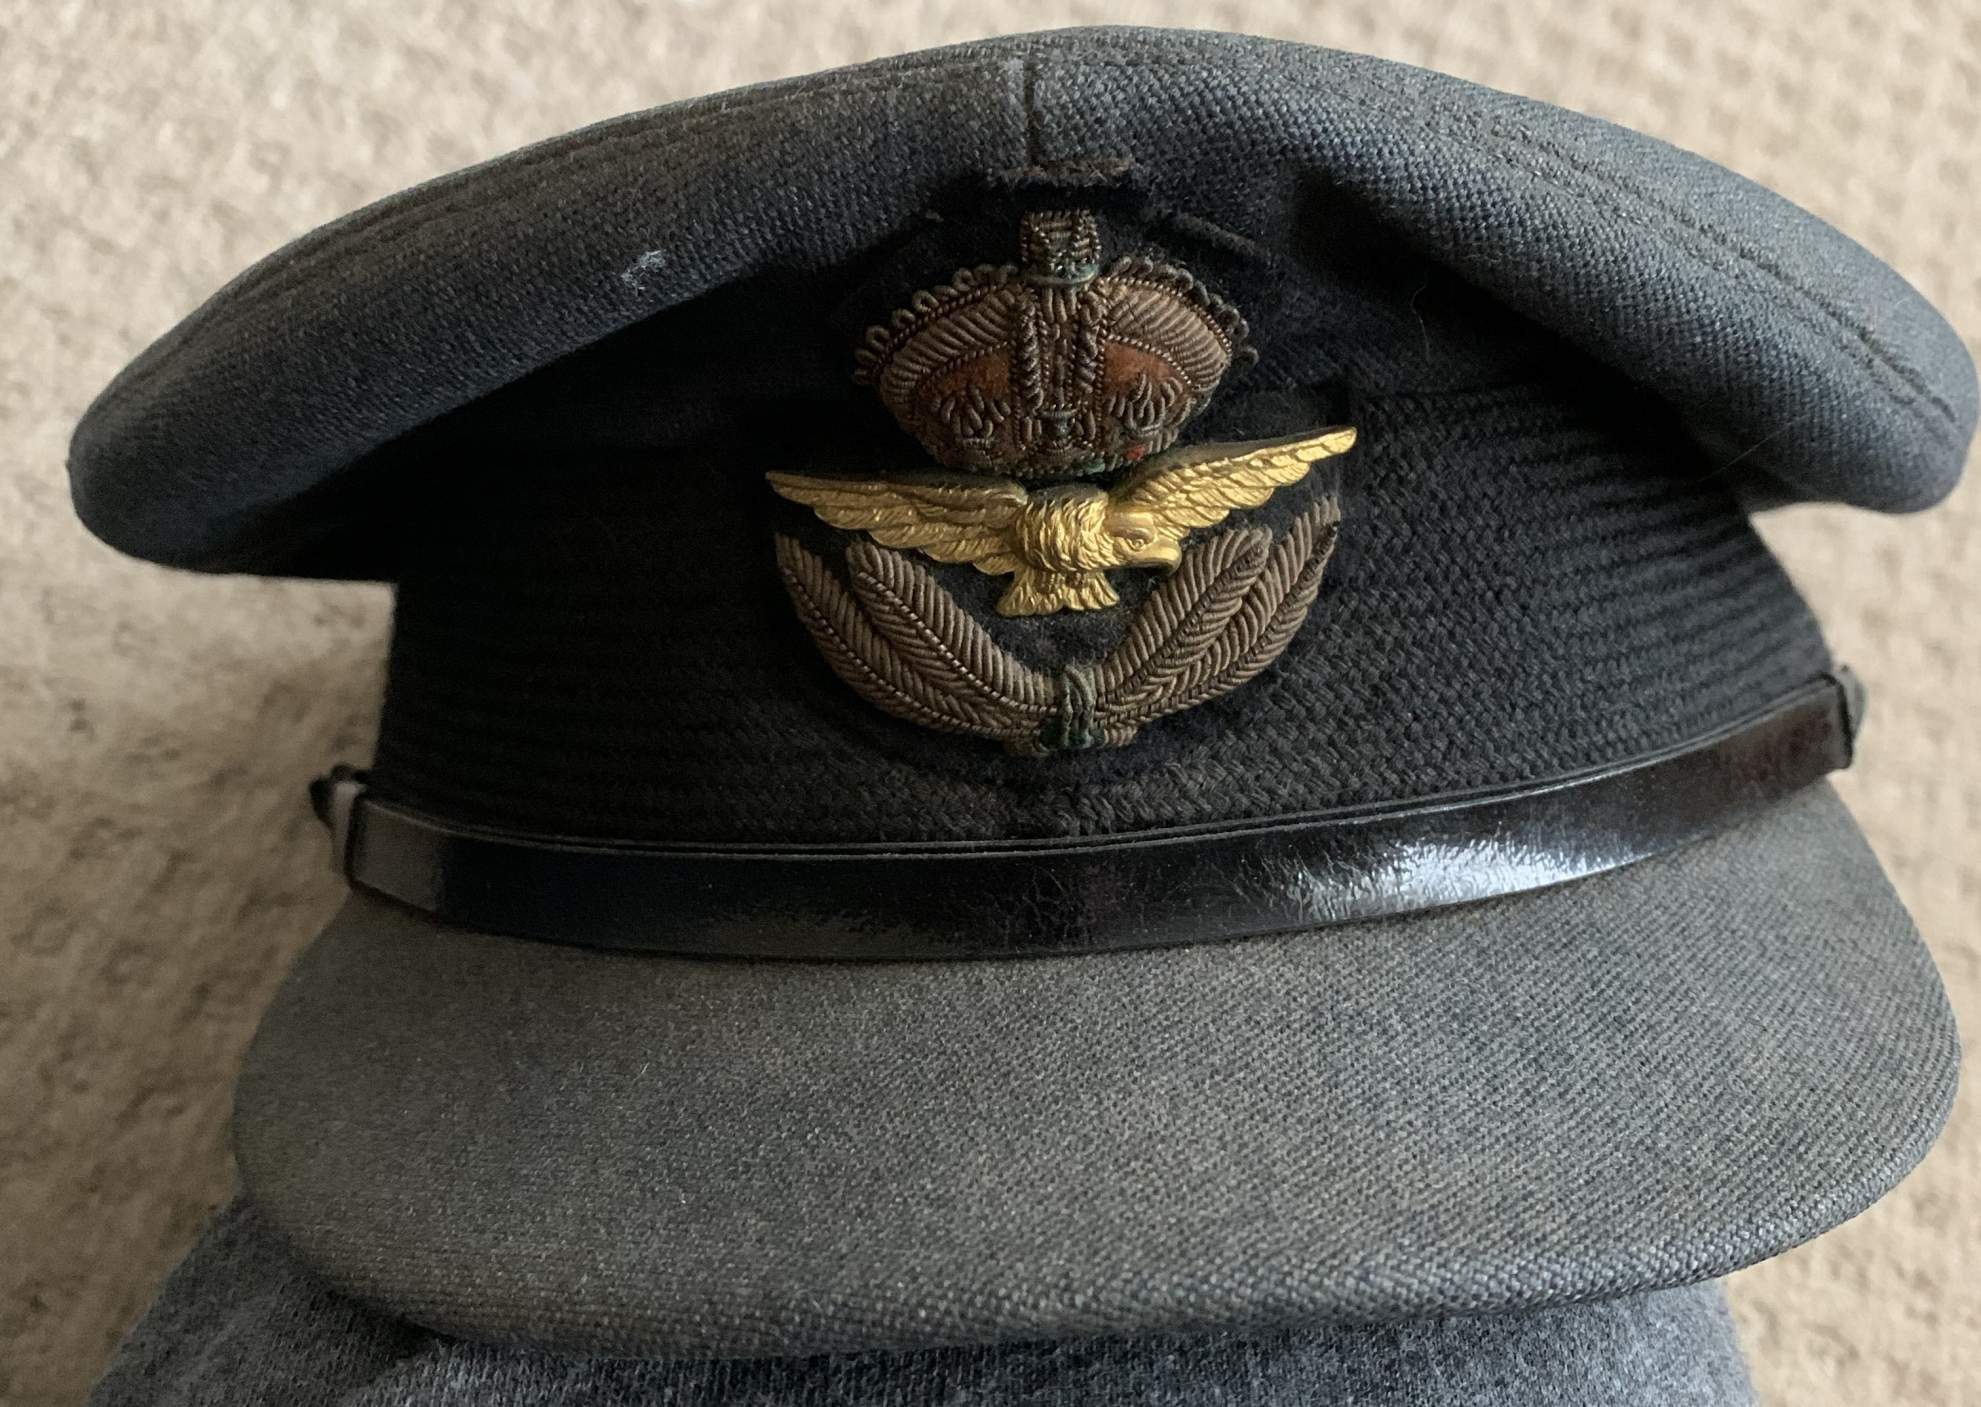 Ww2 German Soviet Allied Militaria Uniforms Awards Weapons History War Relics Forum